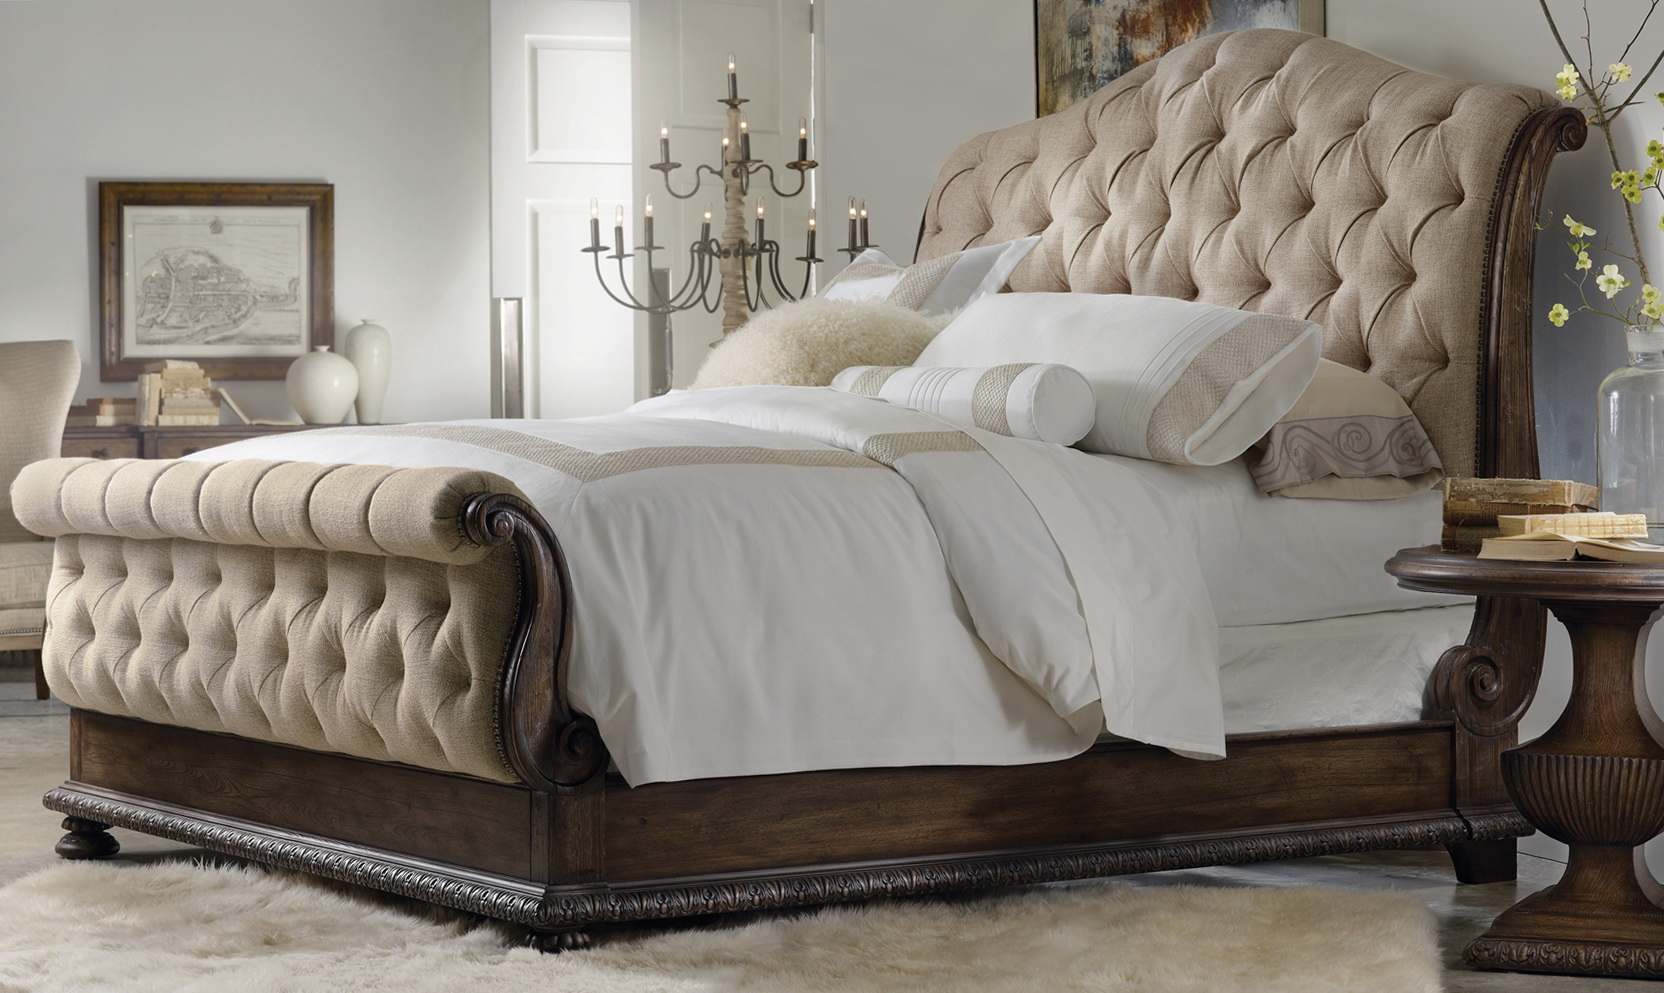 Bed Bath And Beyond Headboard Opportunity With Bed Bath And Beyond Headboard No Headboard Bed